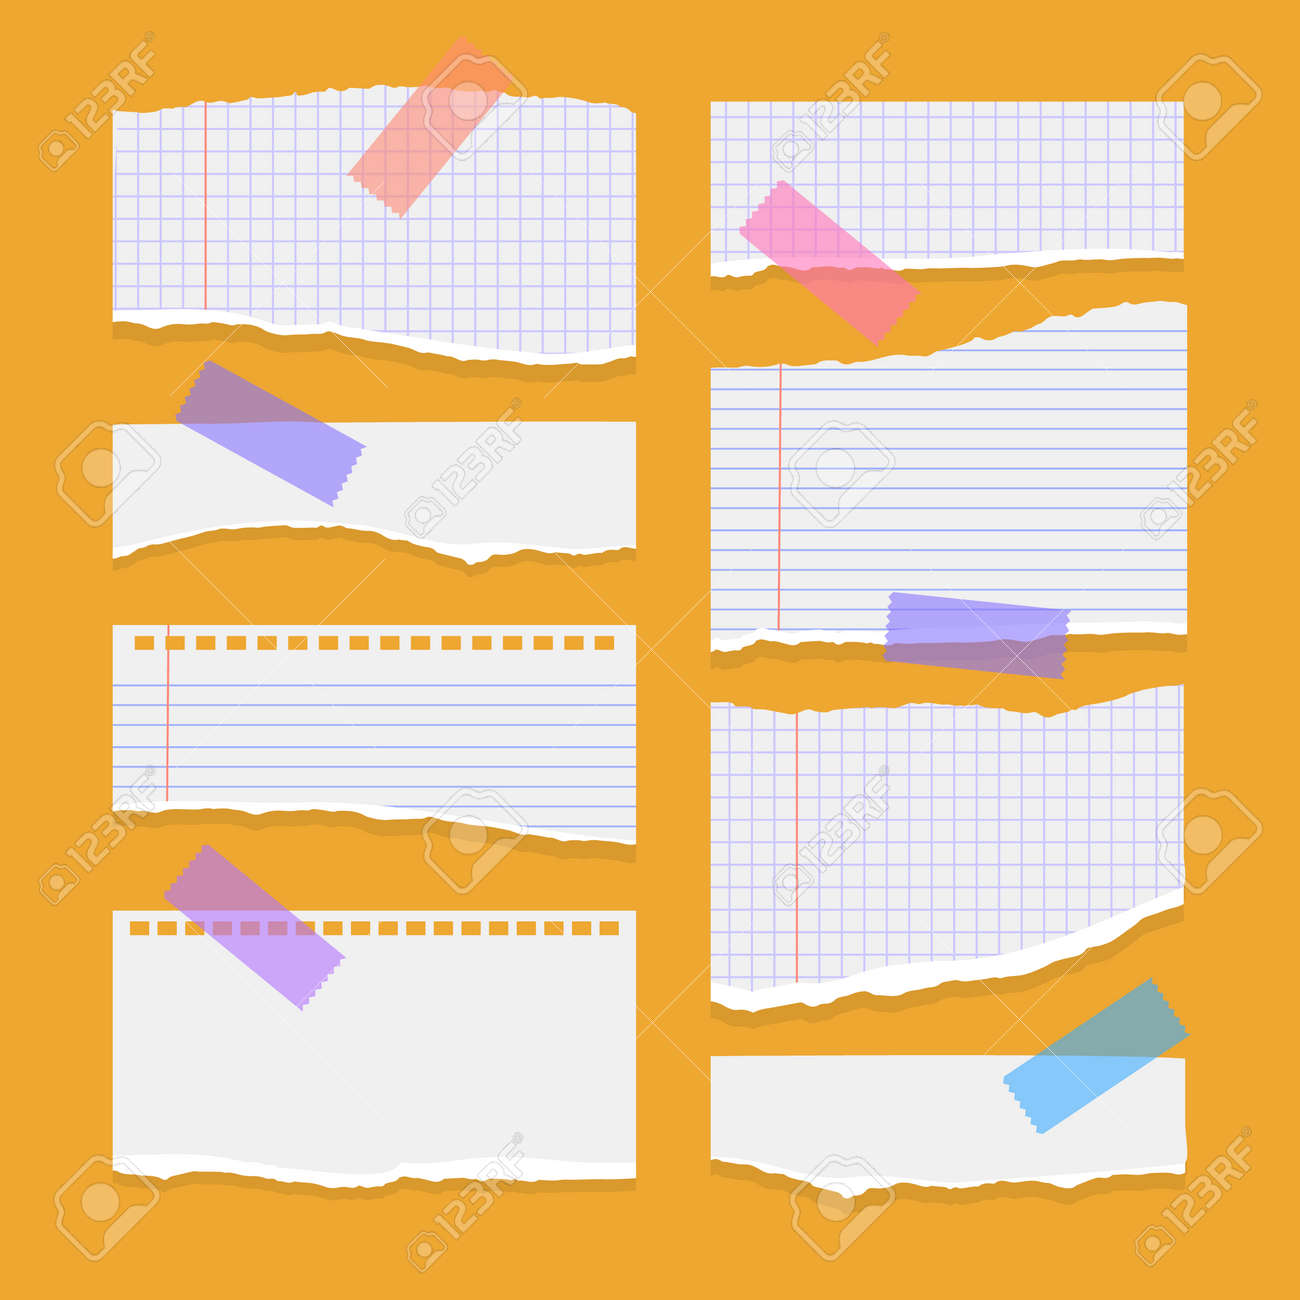 Set of torn ripped paper sheets of white color, notebook paper on orange background. Vector illustration - 171608000